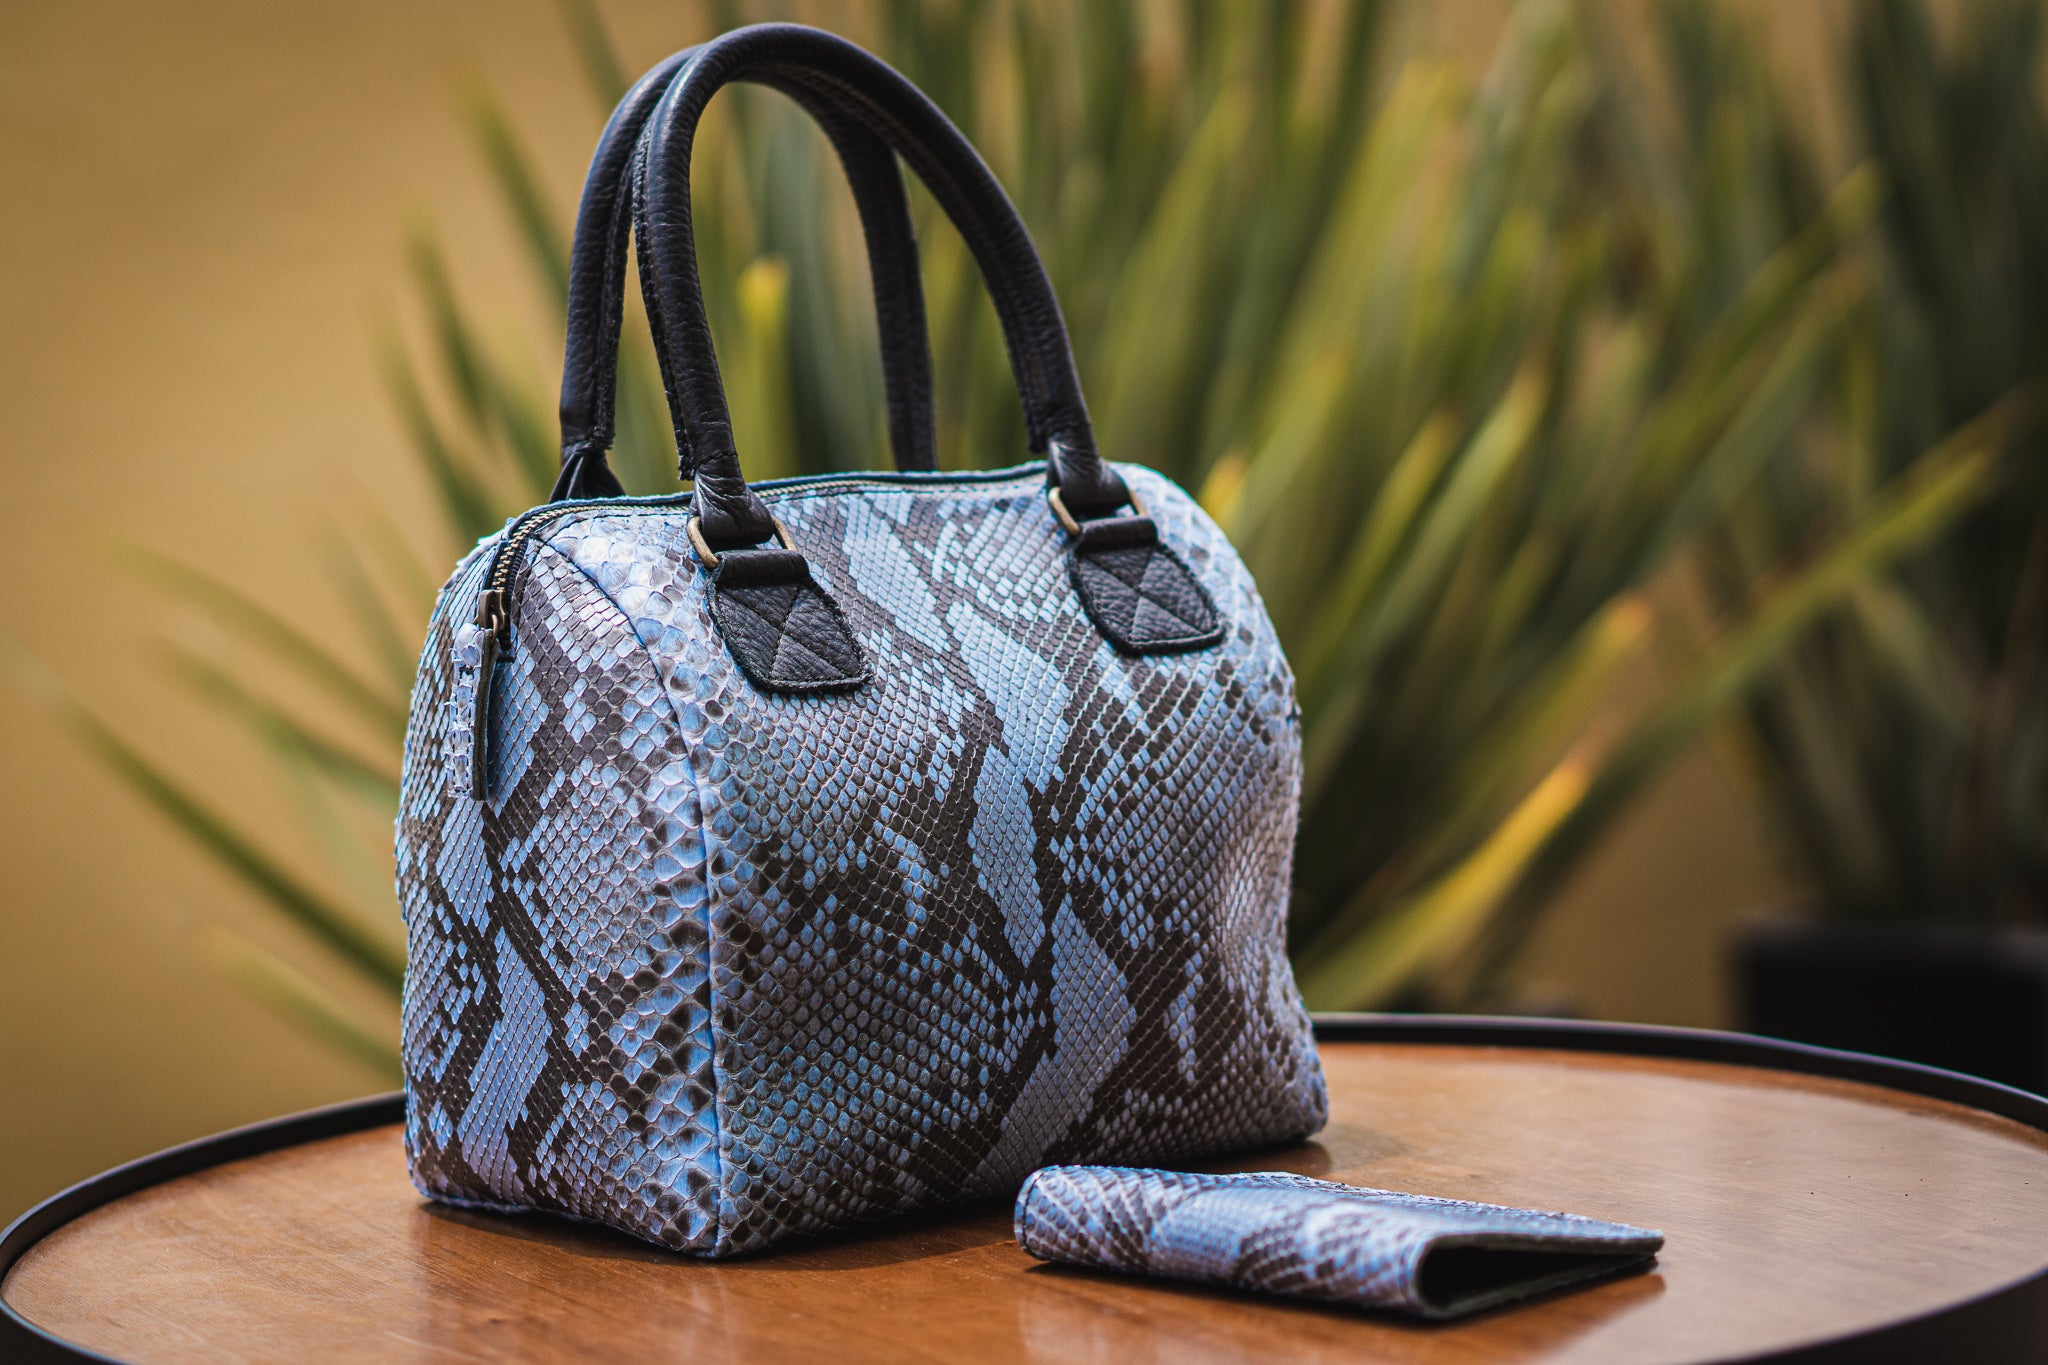 The Glades Python Purse